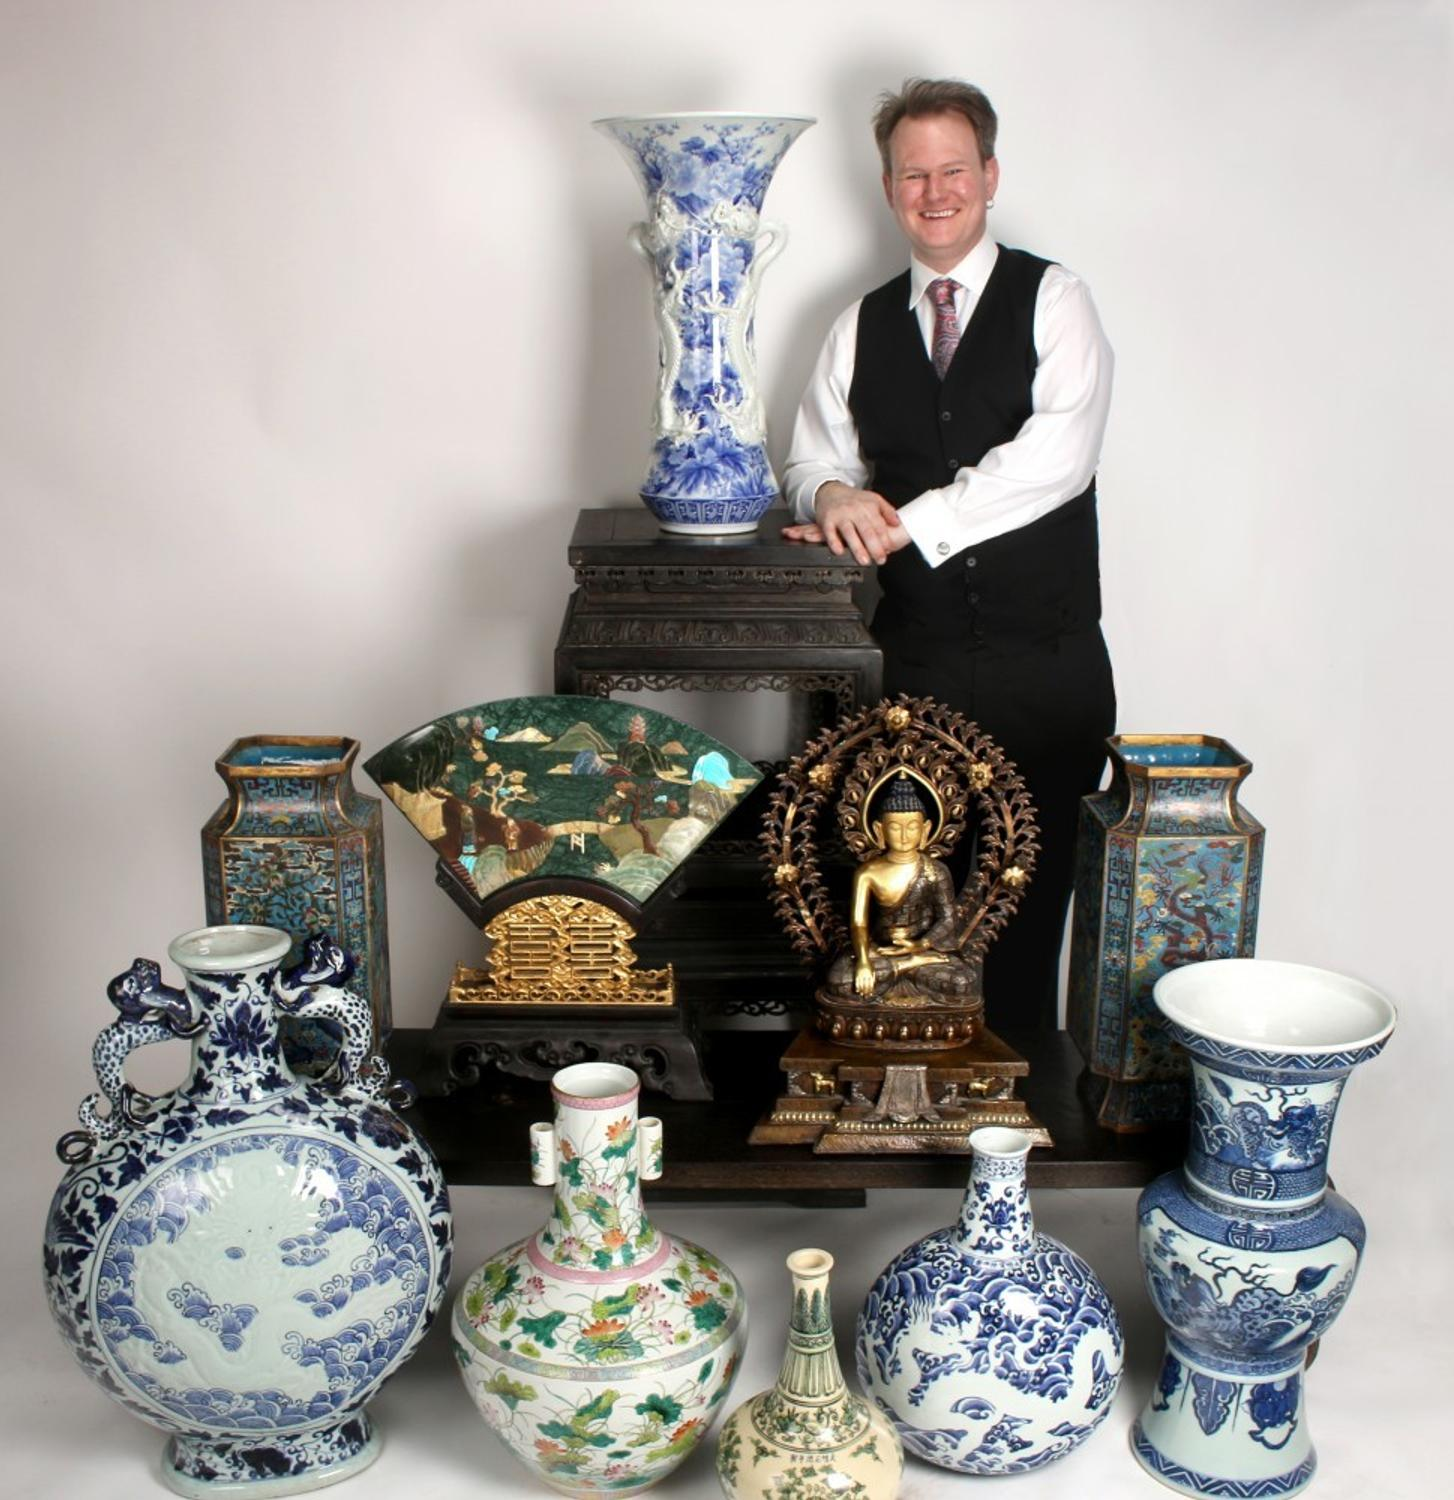 Over 300 Hand-selected Chinese Antiques Are In Converse